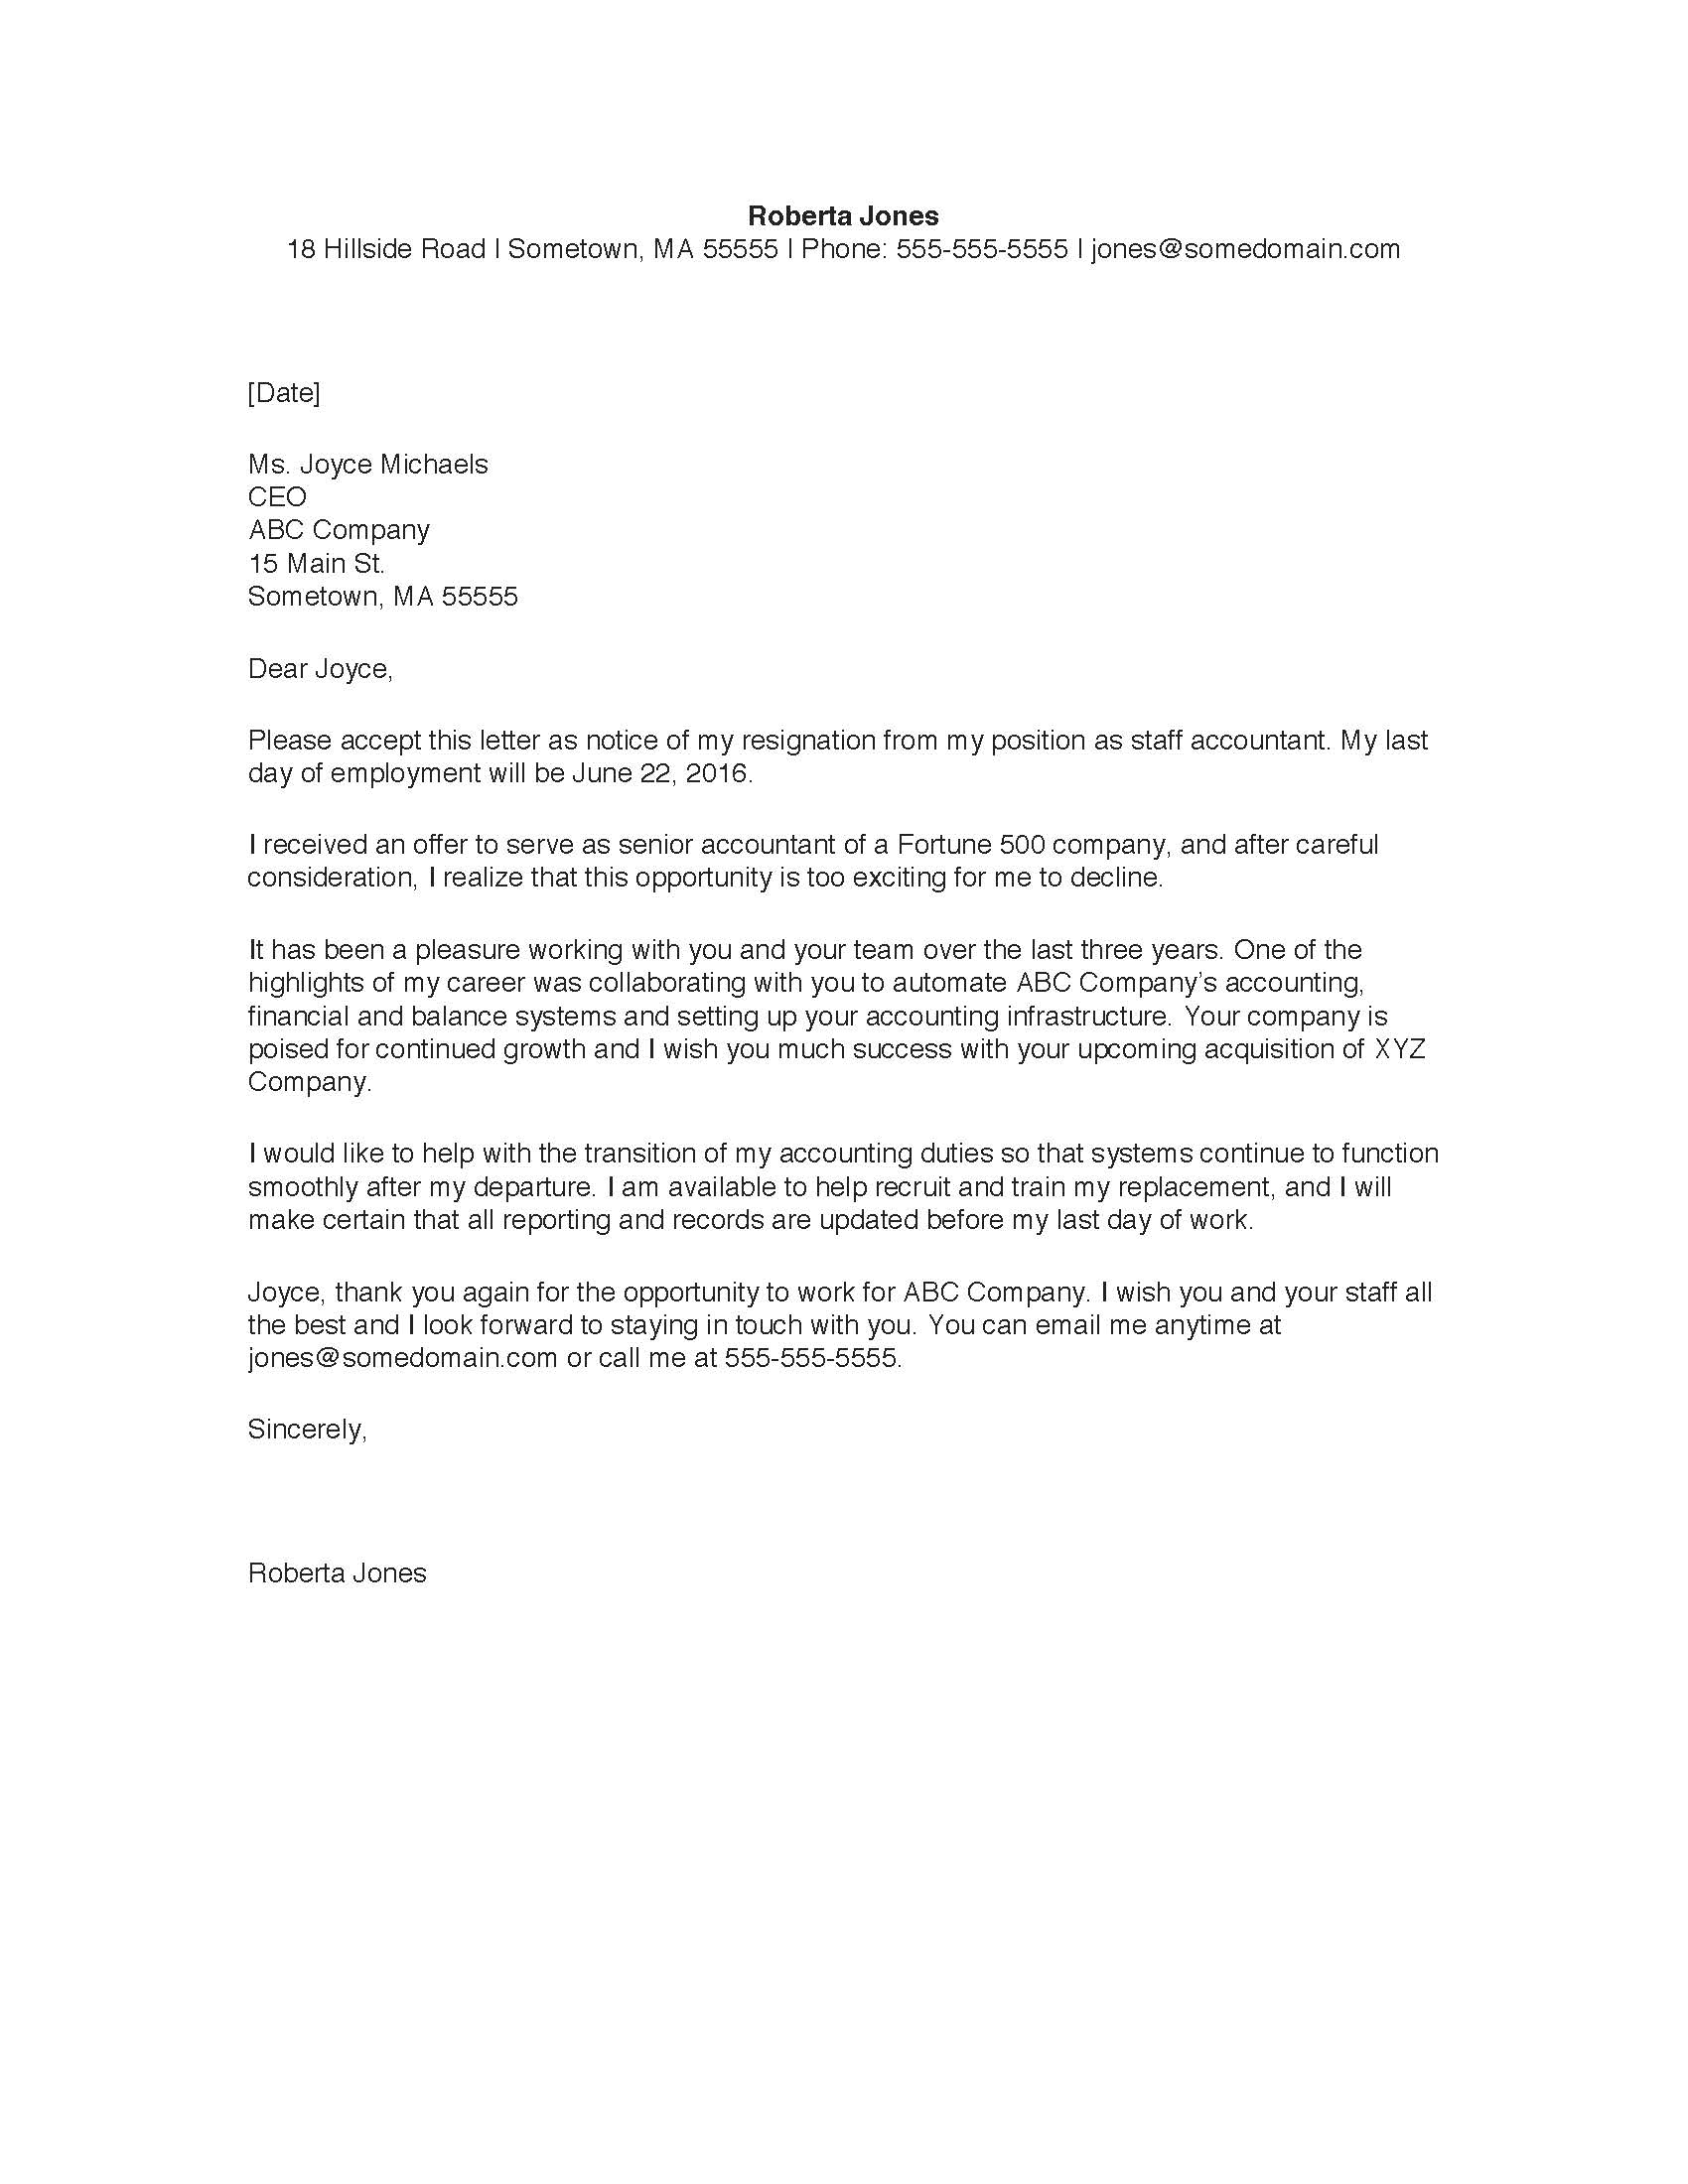 Sample resignation letter monster sample resignation letter expocarfo Image collections